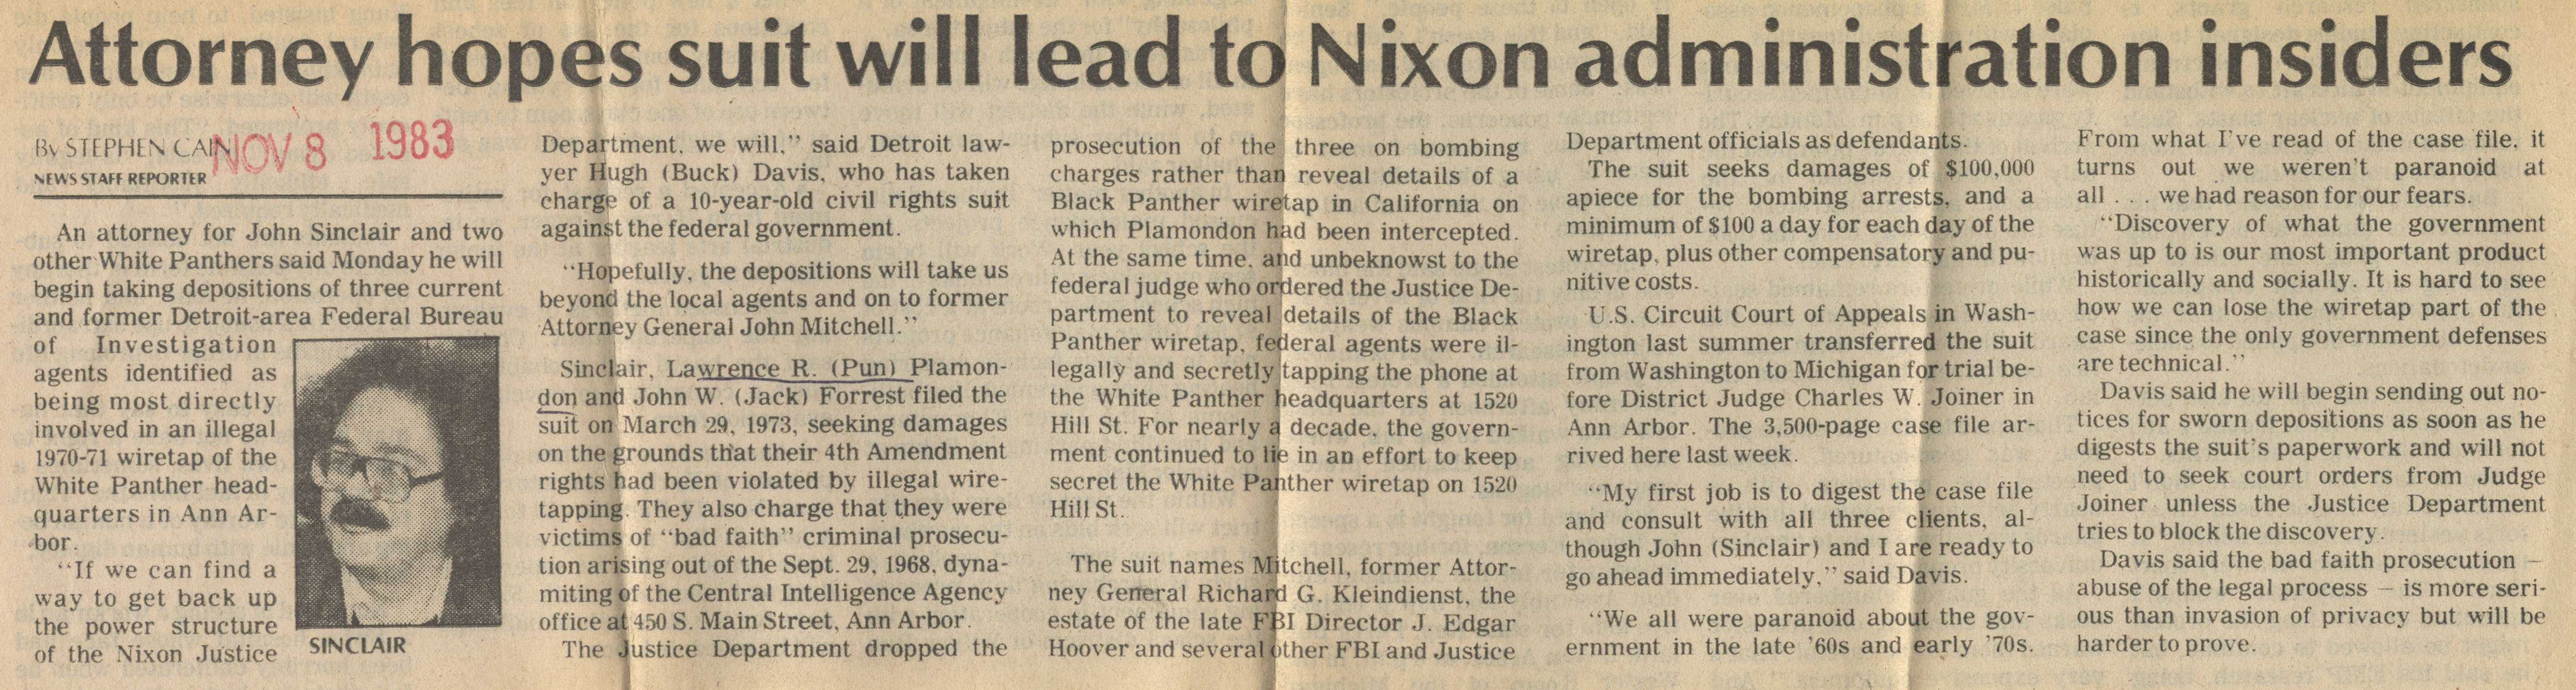 Attorney Hopes Suit Will Lead To Nixon Administration Insiders image